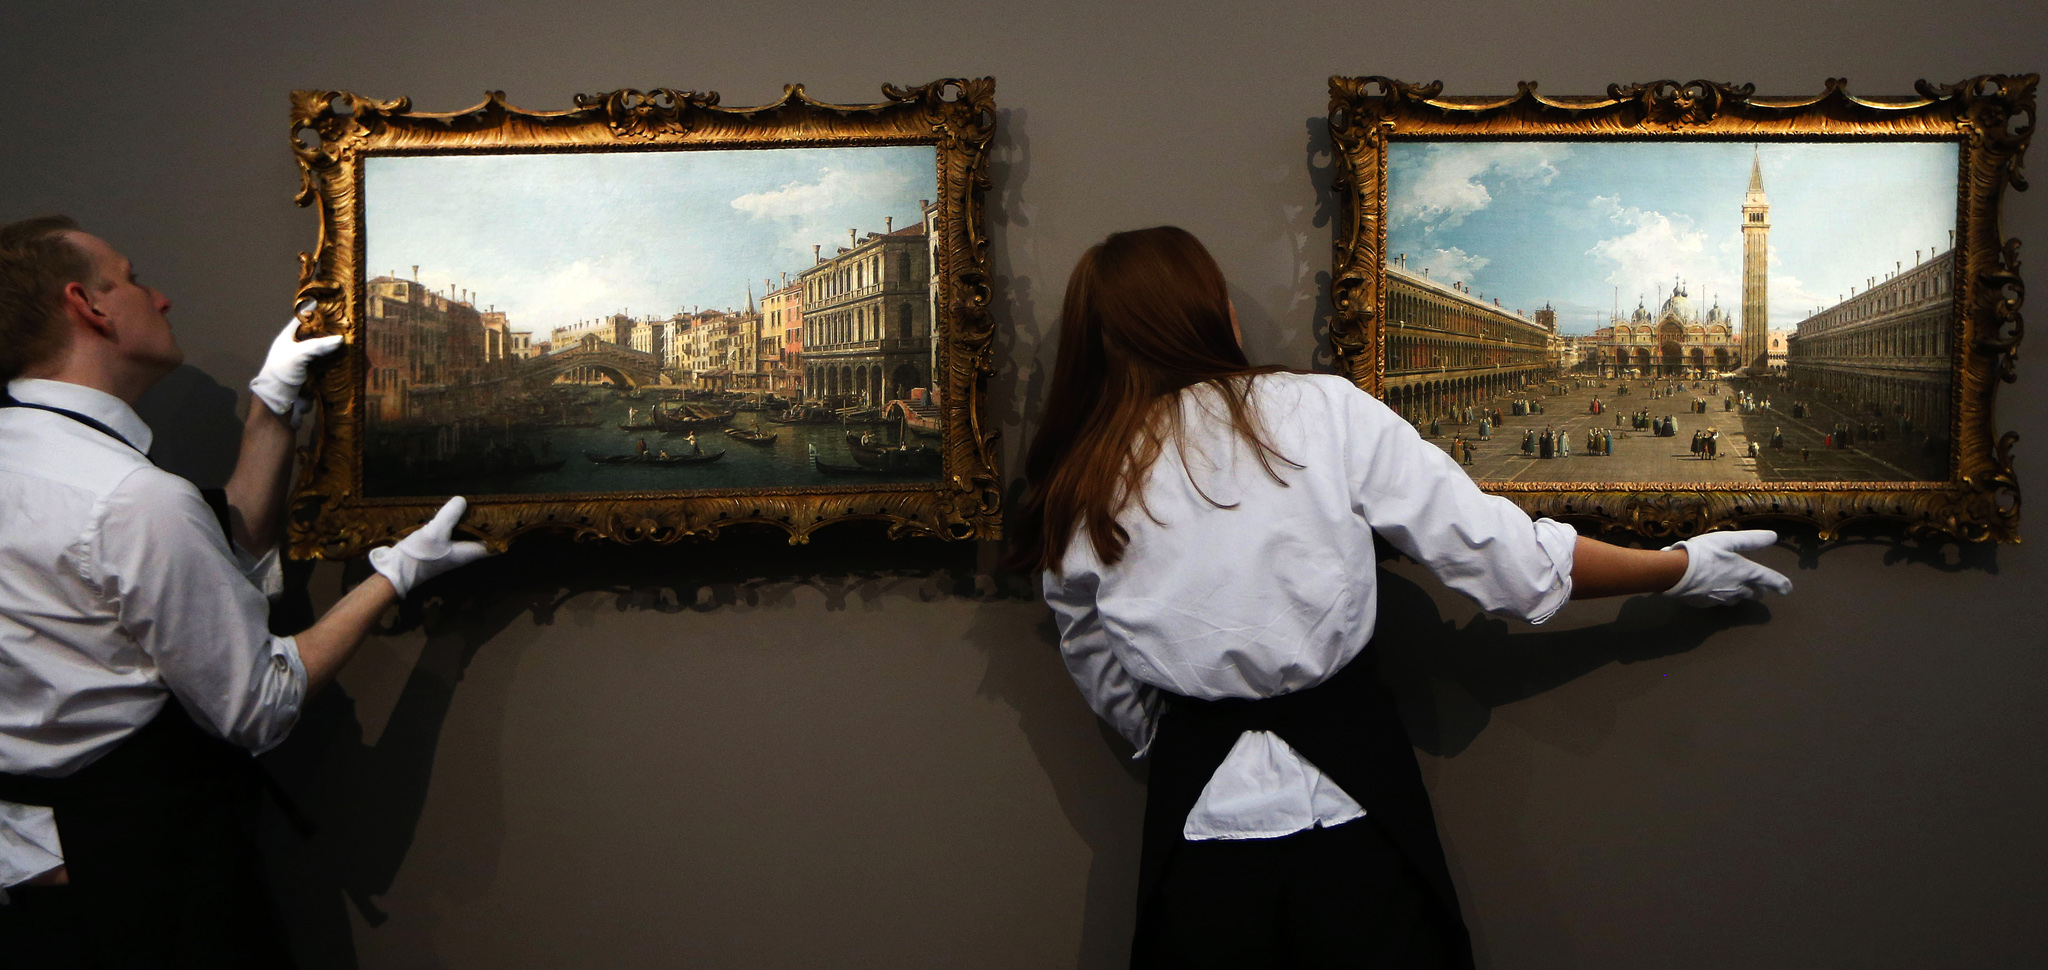 Sotheby's employees hang up the paintings 'A View of the Grand Canal and Rialto Bridge', left, and 'A View of the Piazza San Marco looking East towards the Basilica' by Canaletto on display at the auction house in London, Monday, Dec. 2, 2013. The paintings are to be auctioned as a pair in 'Old Master and British Paintings' sale on Dec. 4 with an estimated price of 8 to 12 million pounds (US$12.44 to 18.66 million or 9.3 to 13.94 million euro). (AP Photo/Sang Tan)